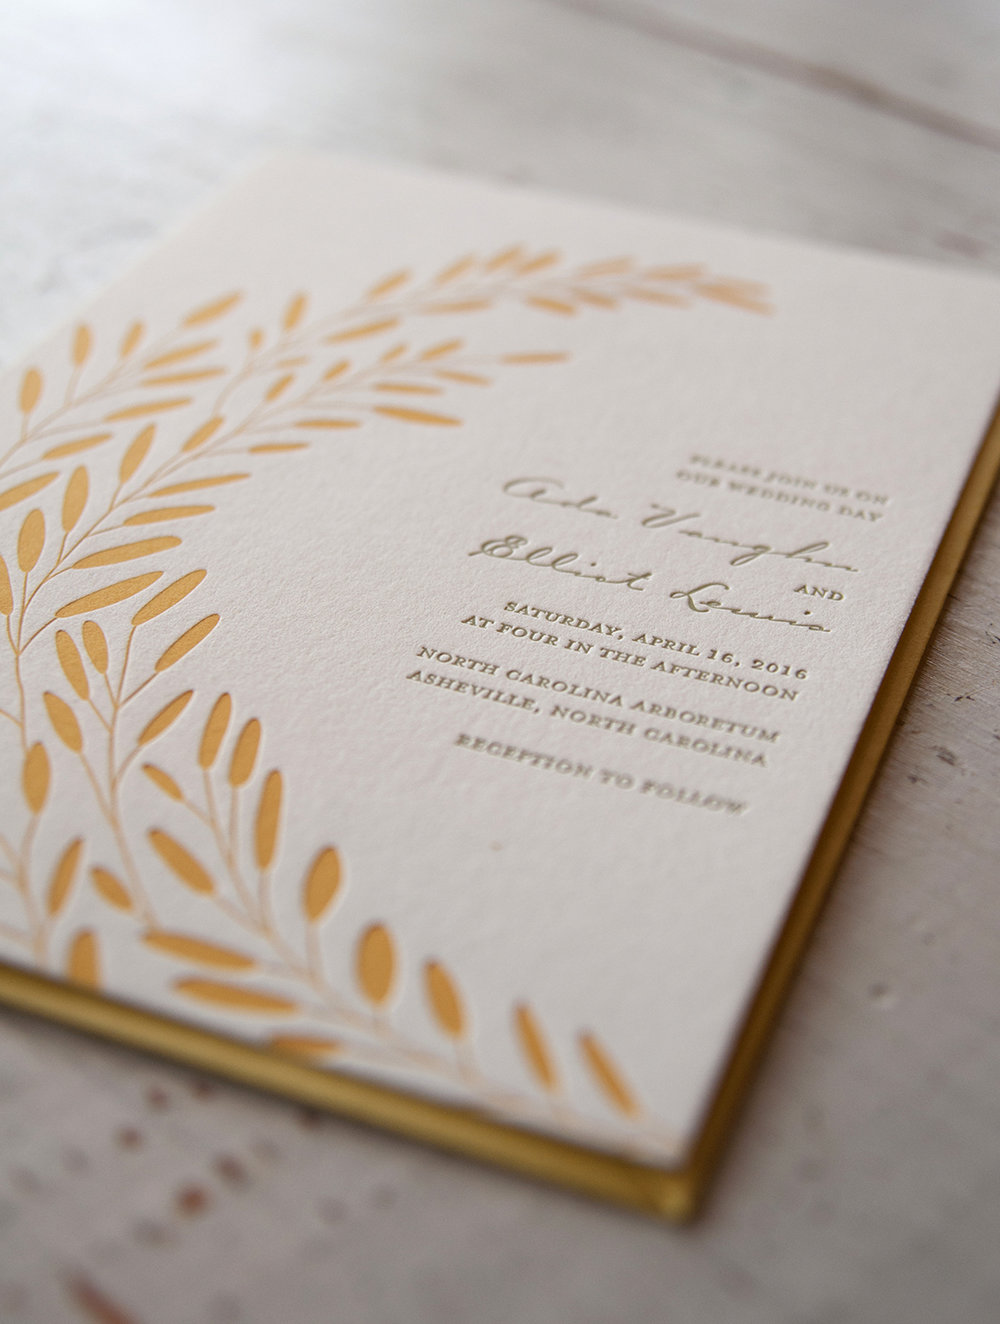 Ada & Elliot: Letterpress printed wedding invitation suite with custom illustration.